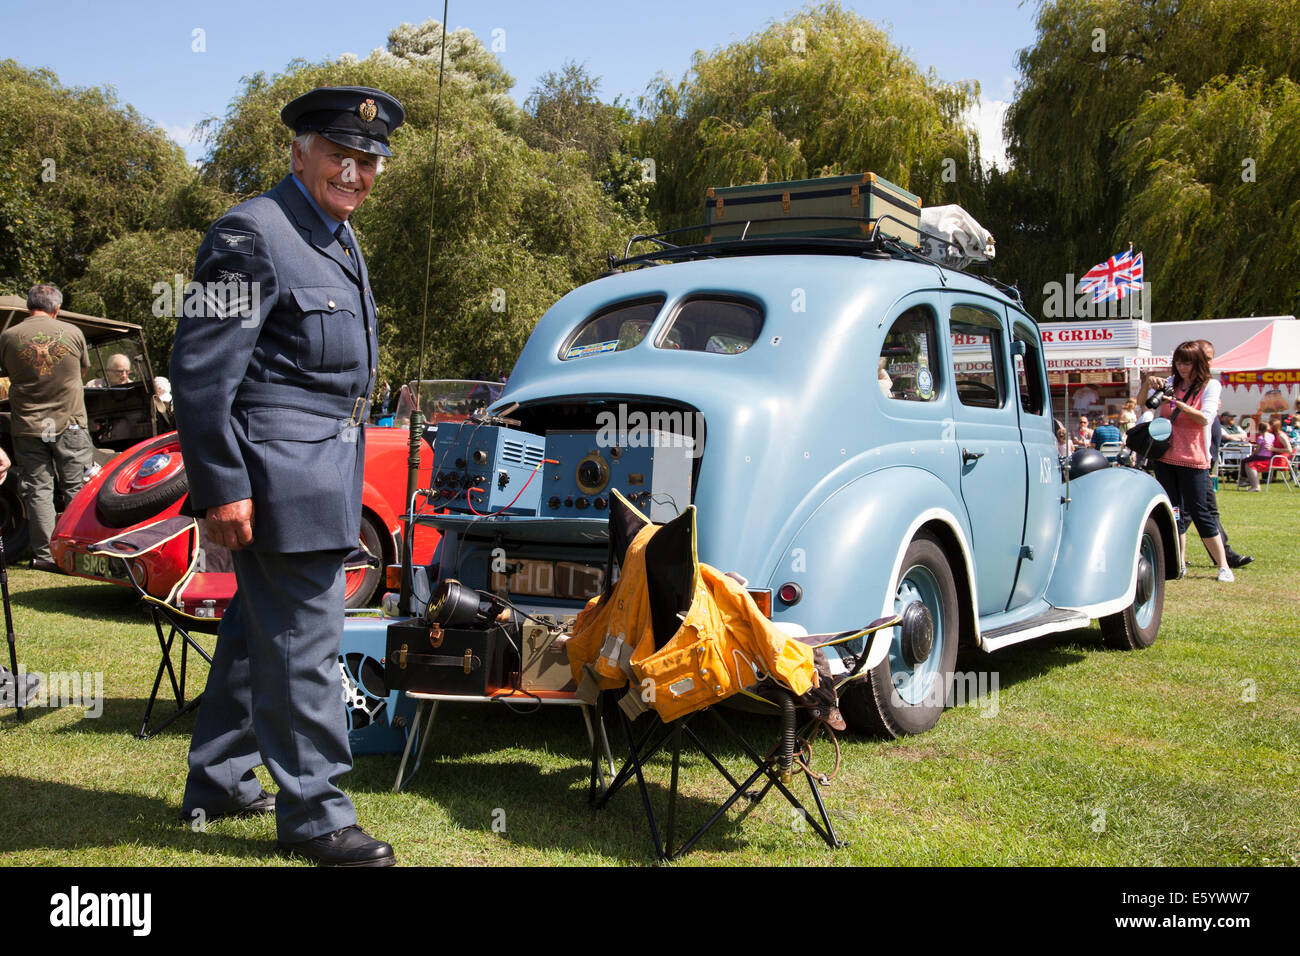 Retford, Nottinghamshire, UK. 9th August, 2014. A participant of the first Retford War Weekend dressed in World - Stock Image